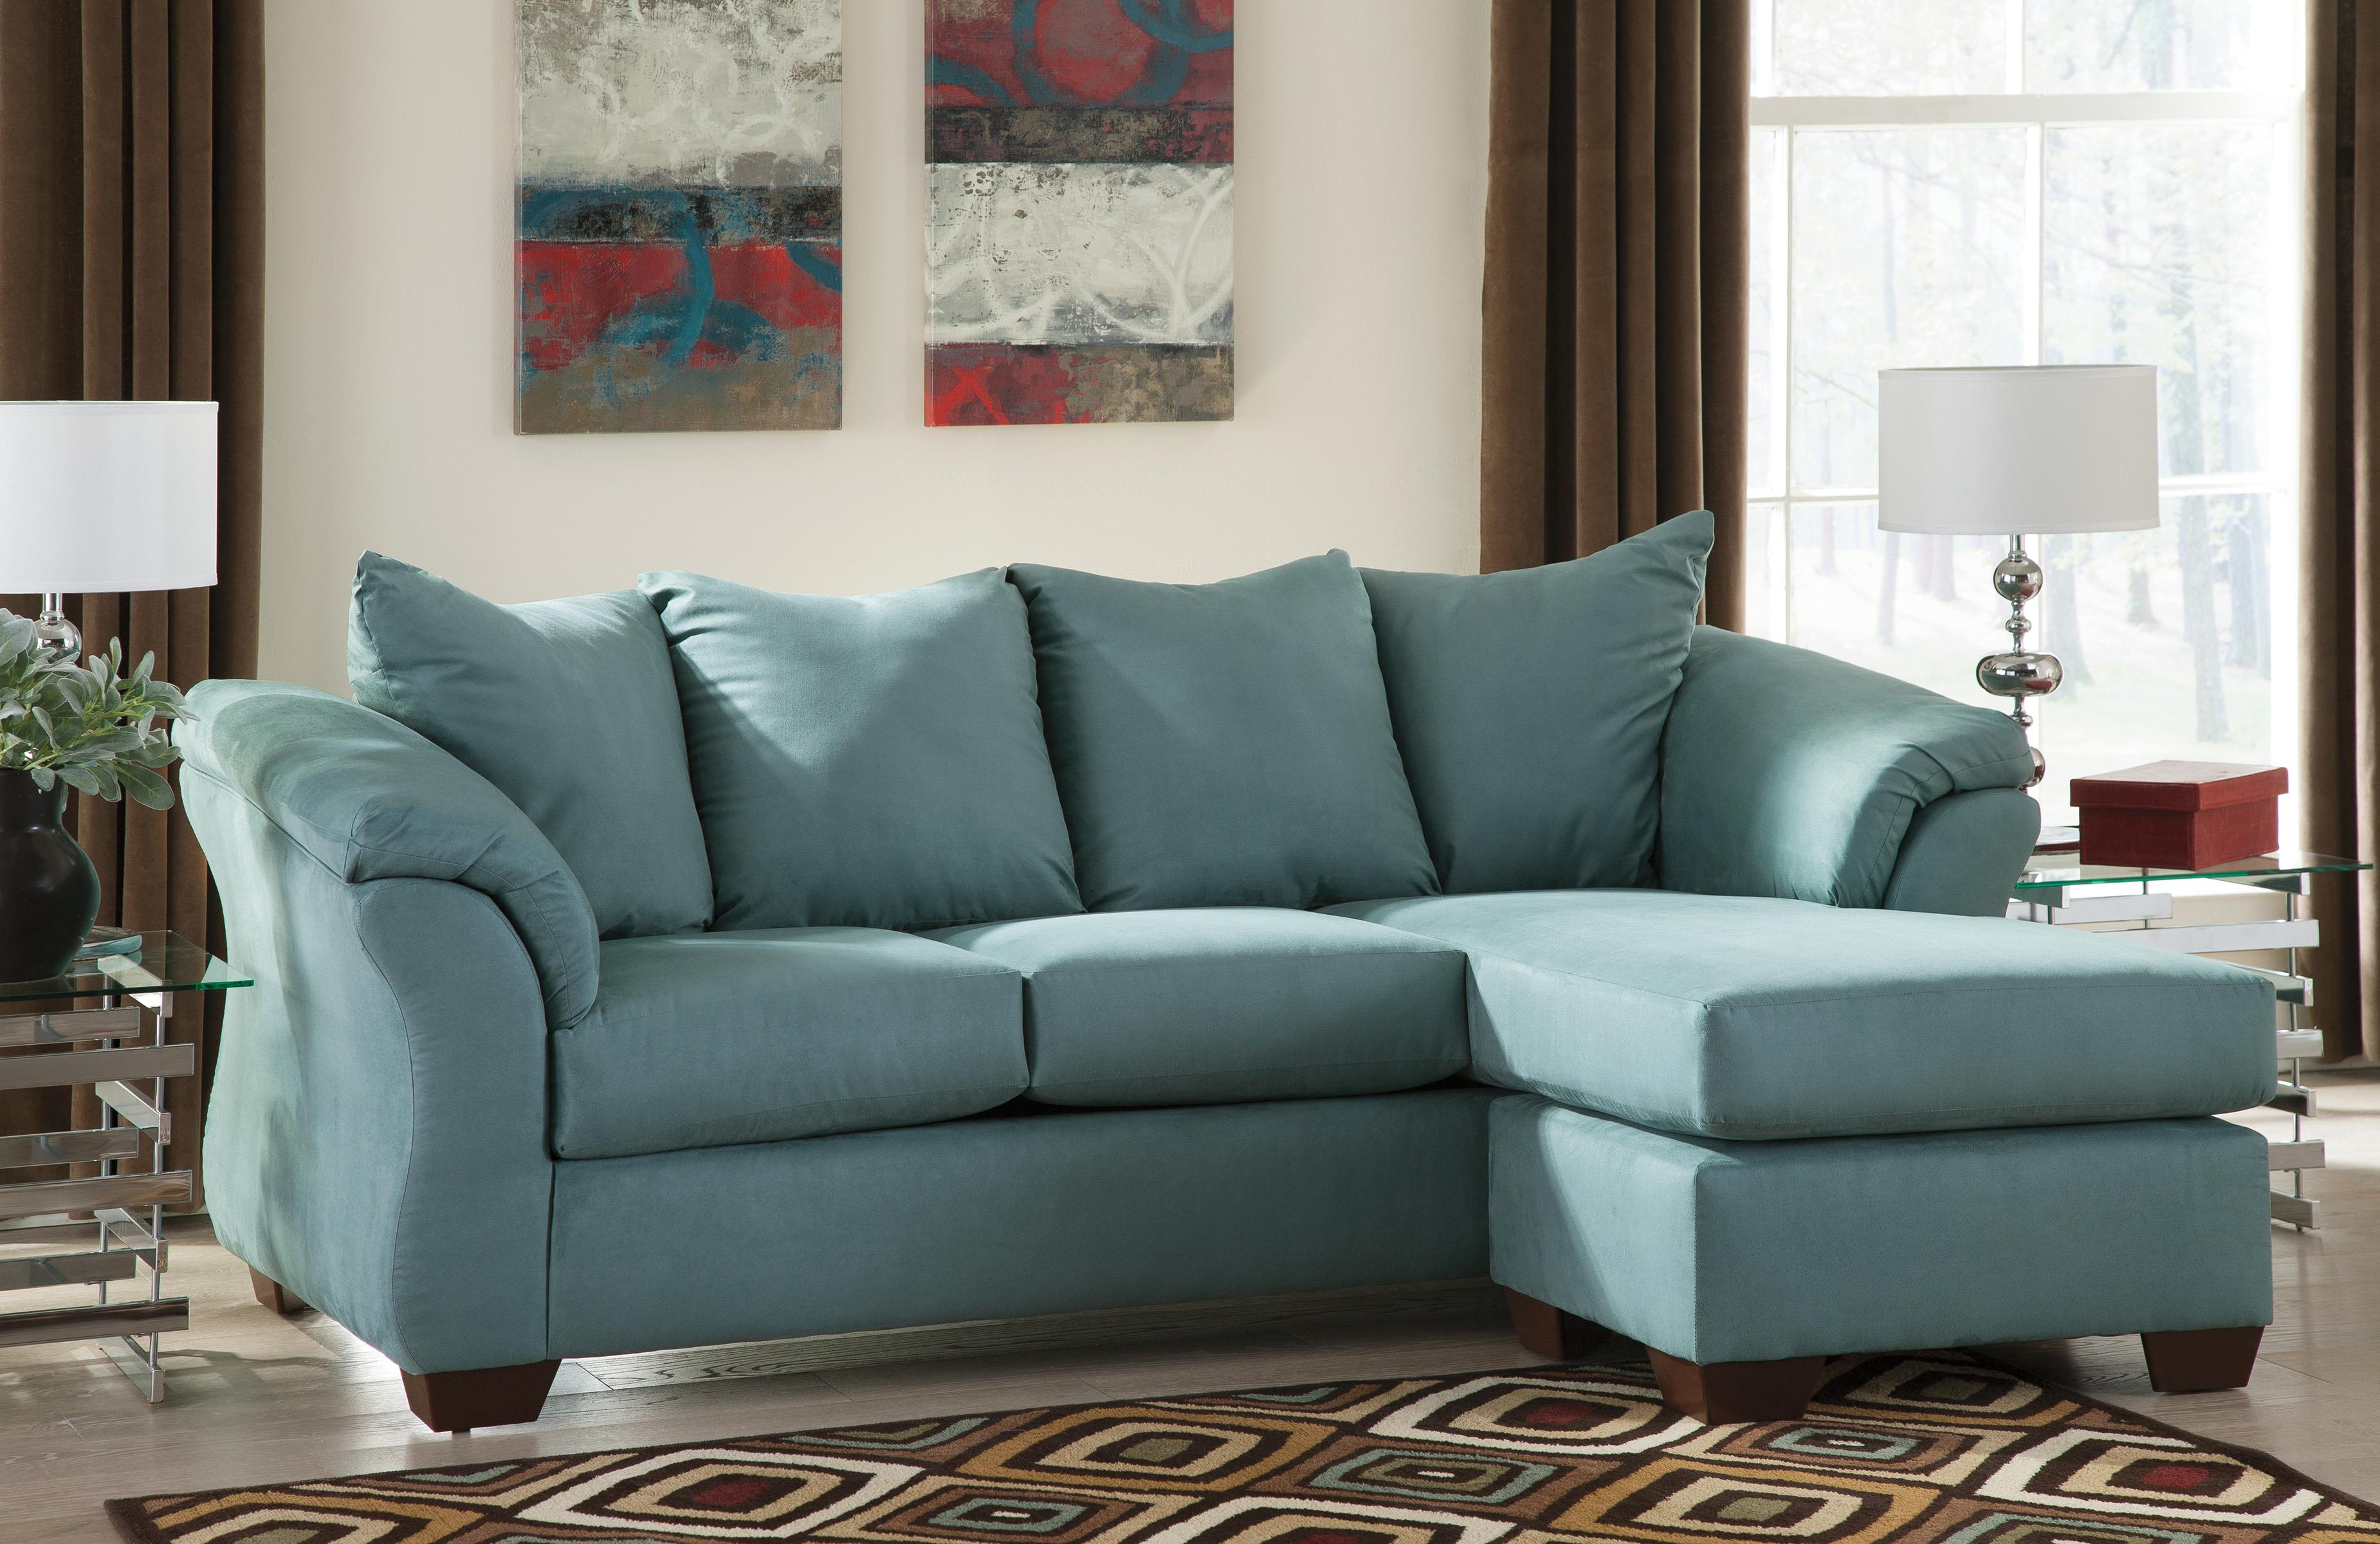 Signature design by ashley darcy sky contemporary sofa for Ashley furniture lucia sofa chaise